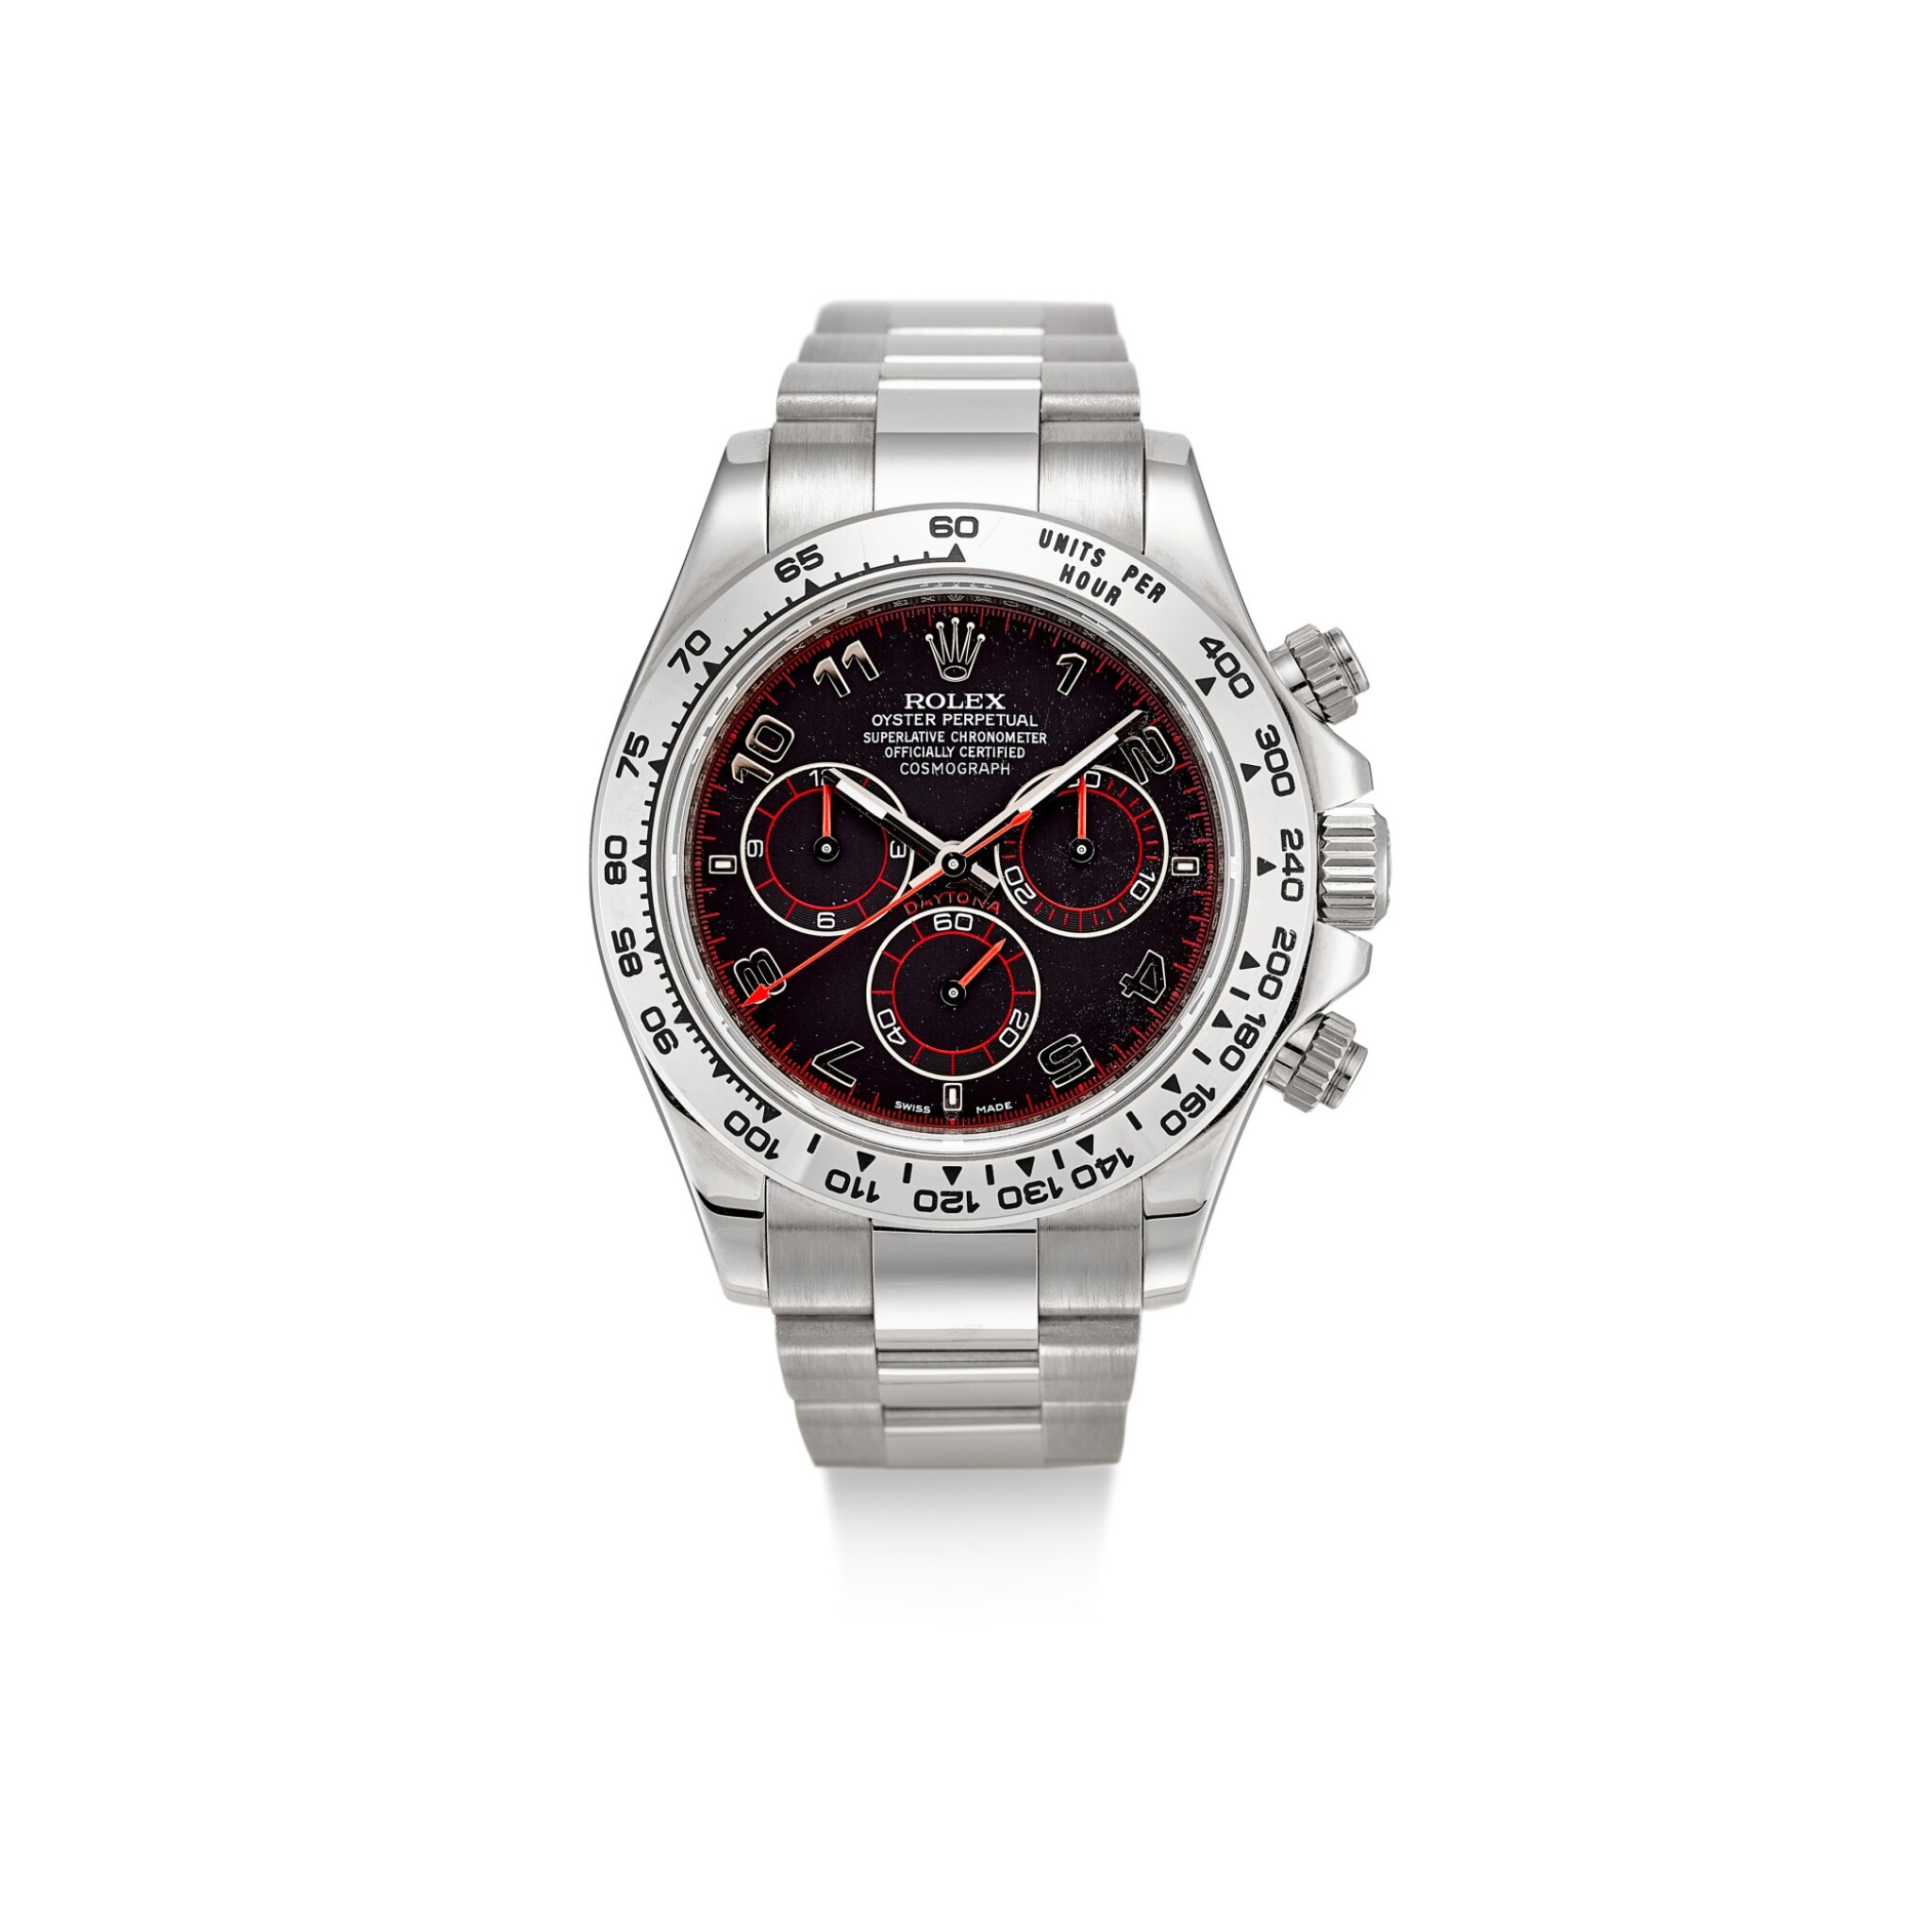 ROLEX | COSMOGRAPH DAYTONA, REFERENCE 116509 A WHITE GOLD CHRONOGRAPH WRISTWATCH WITH BRACELET, CIRCA 2006